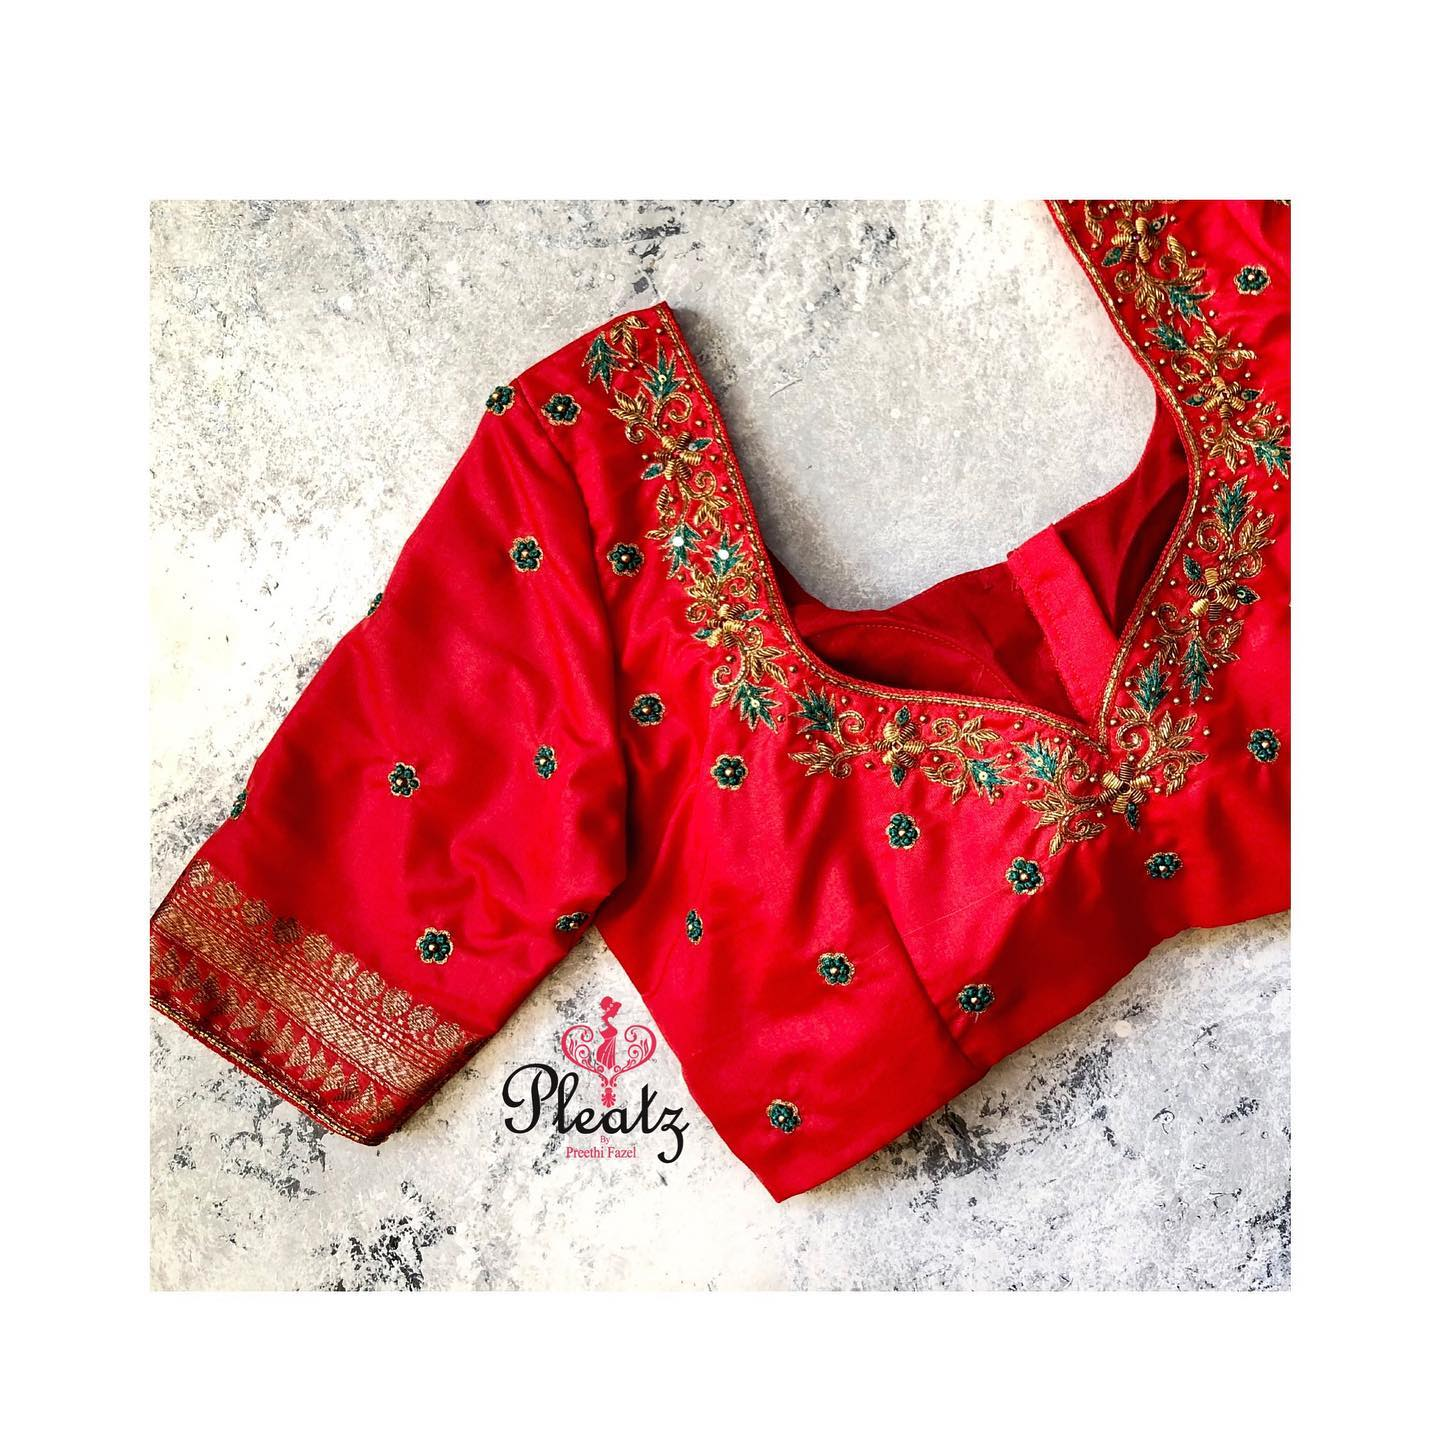 Hand crafted blouses customised at Pleatz. Classy designs to attend wedding parties and other Occasions. | saree blouse designs 2020 | new saree blouse design | maggam blouse designs | 2020-12-23